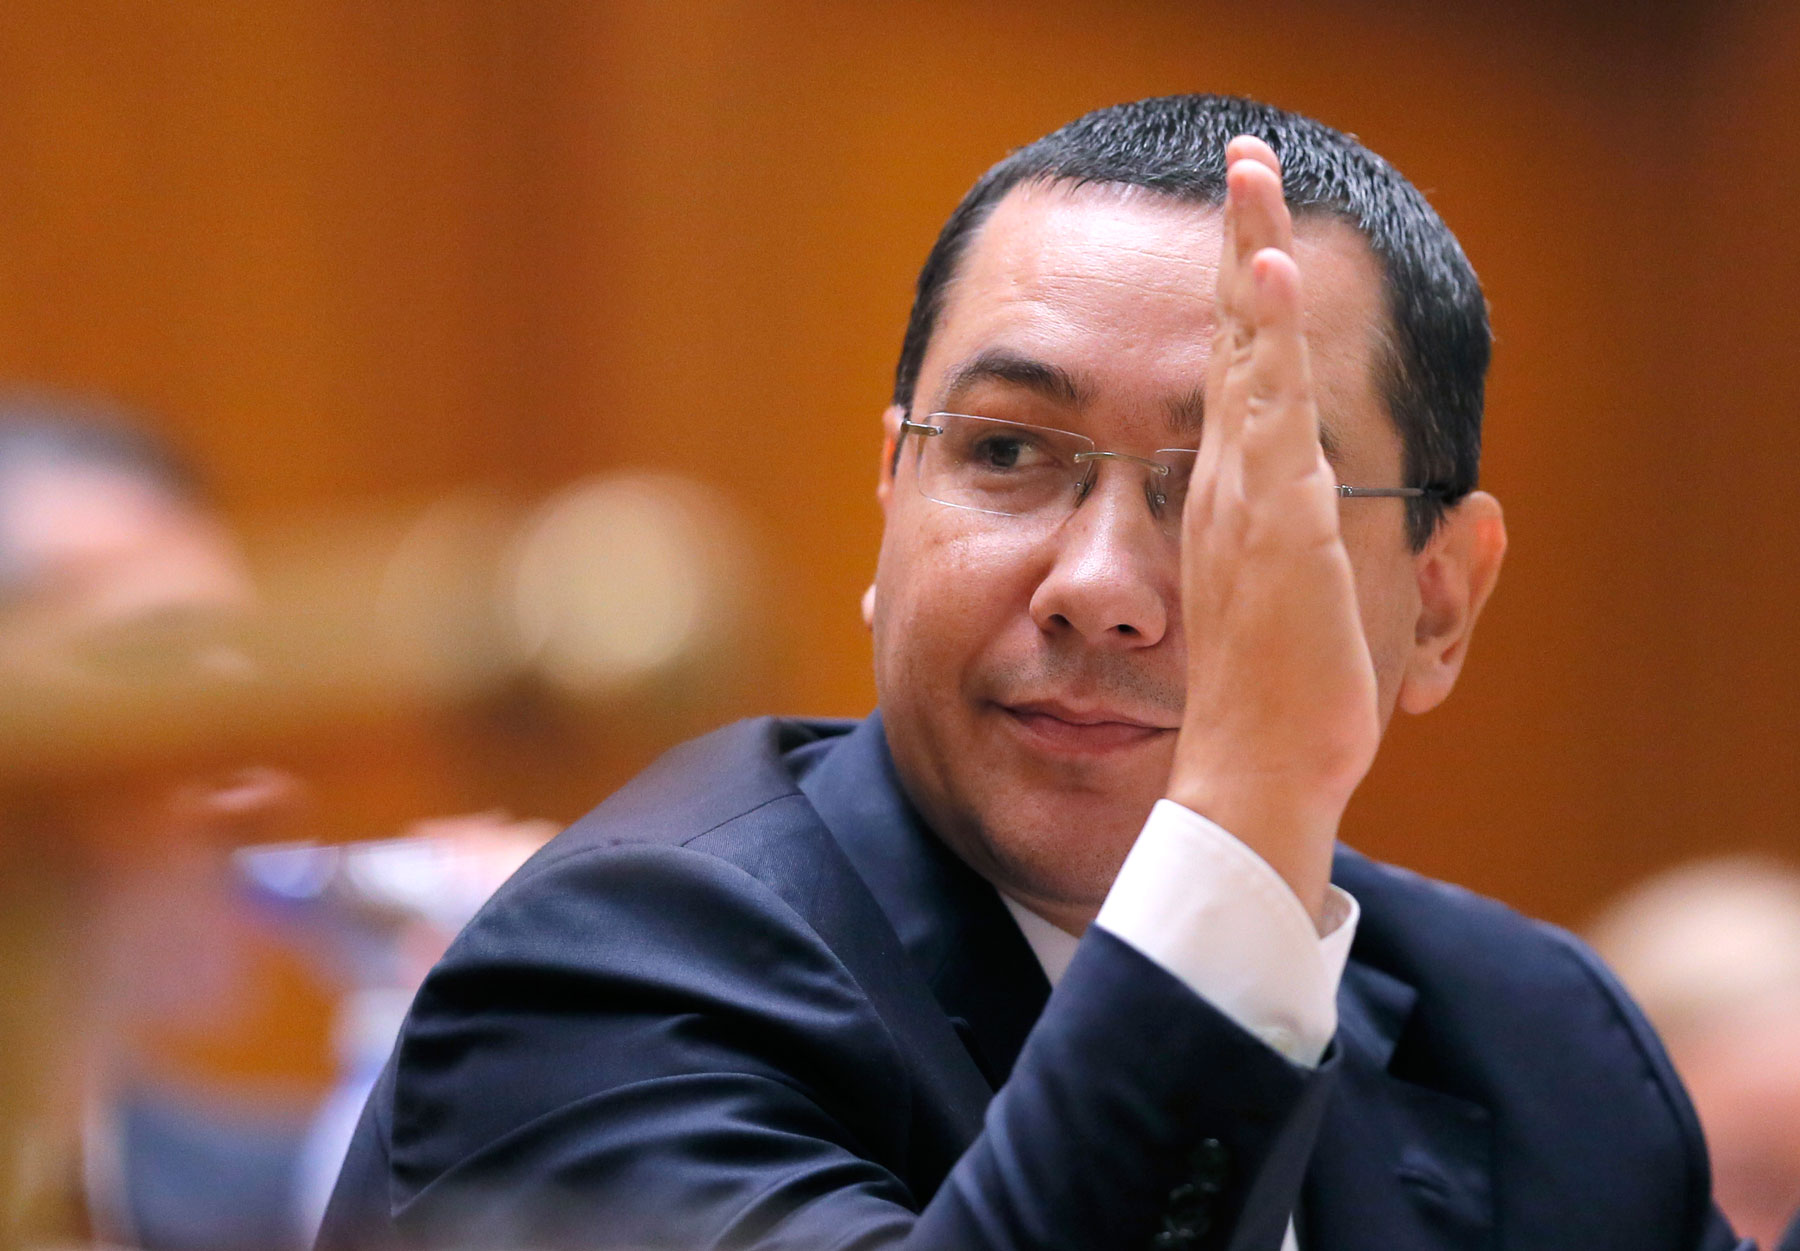 Victor Ponta, The Man Without Qualities